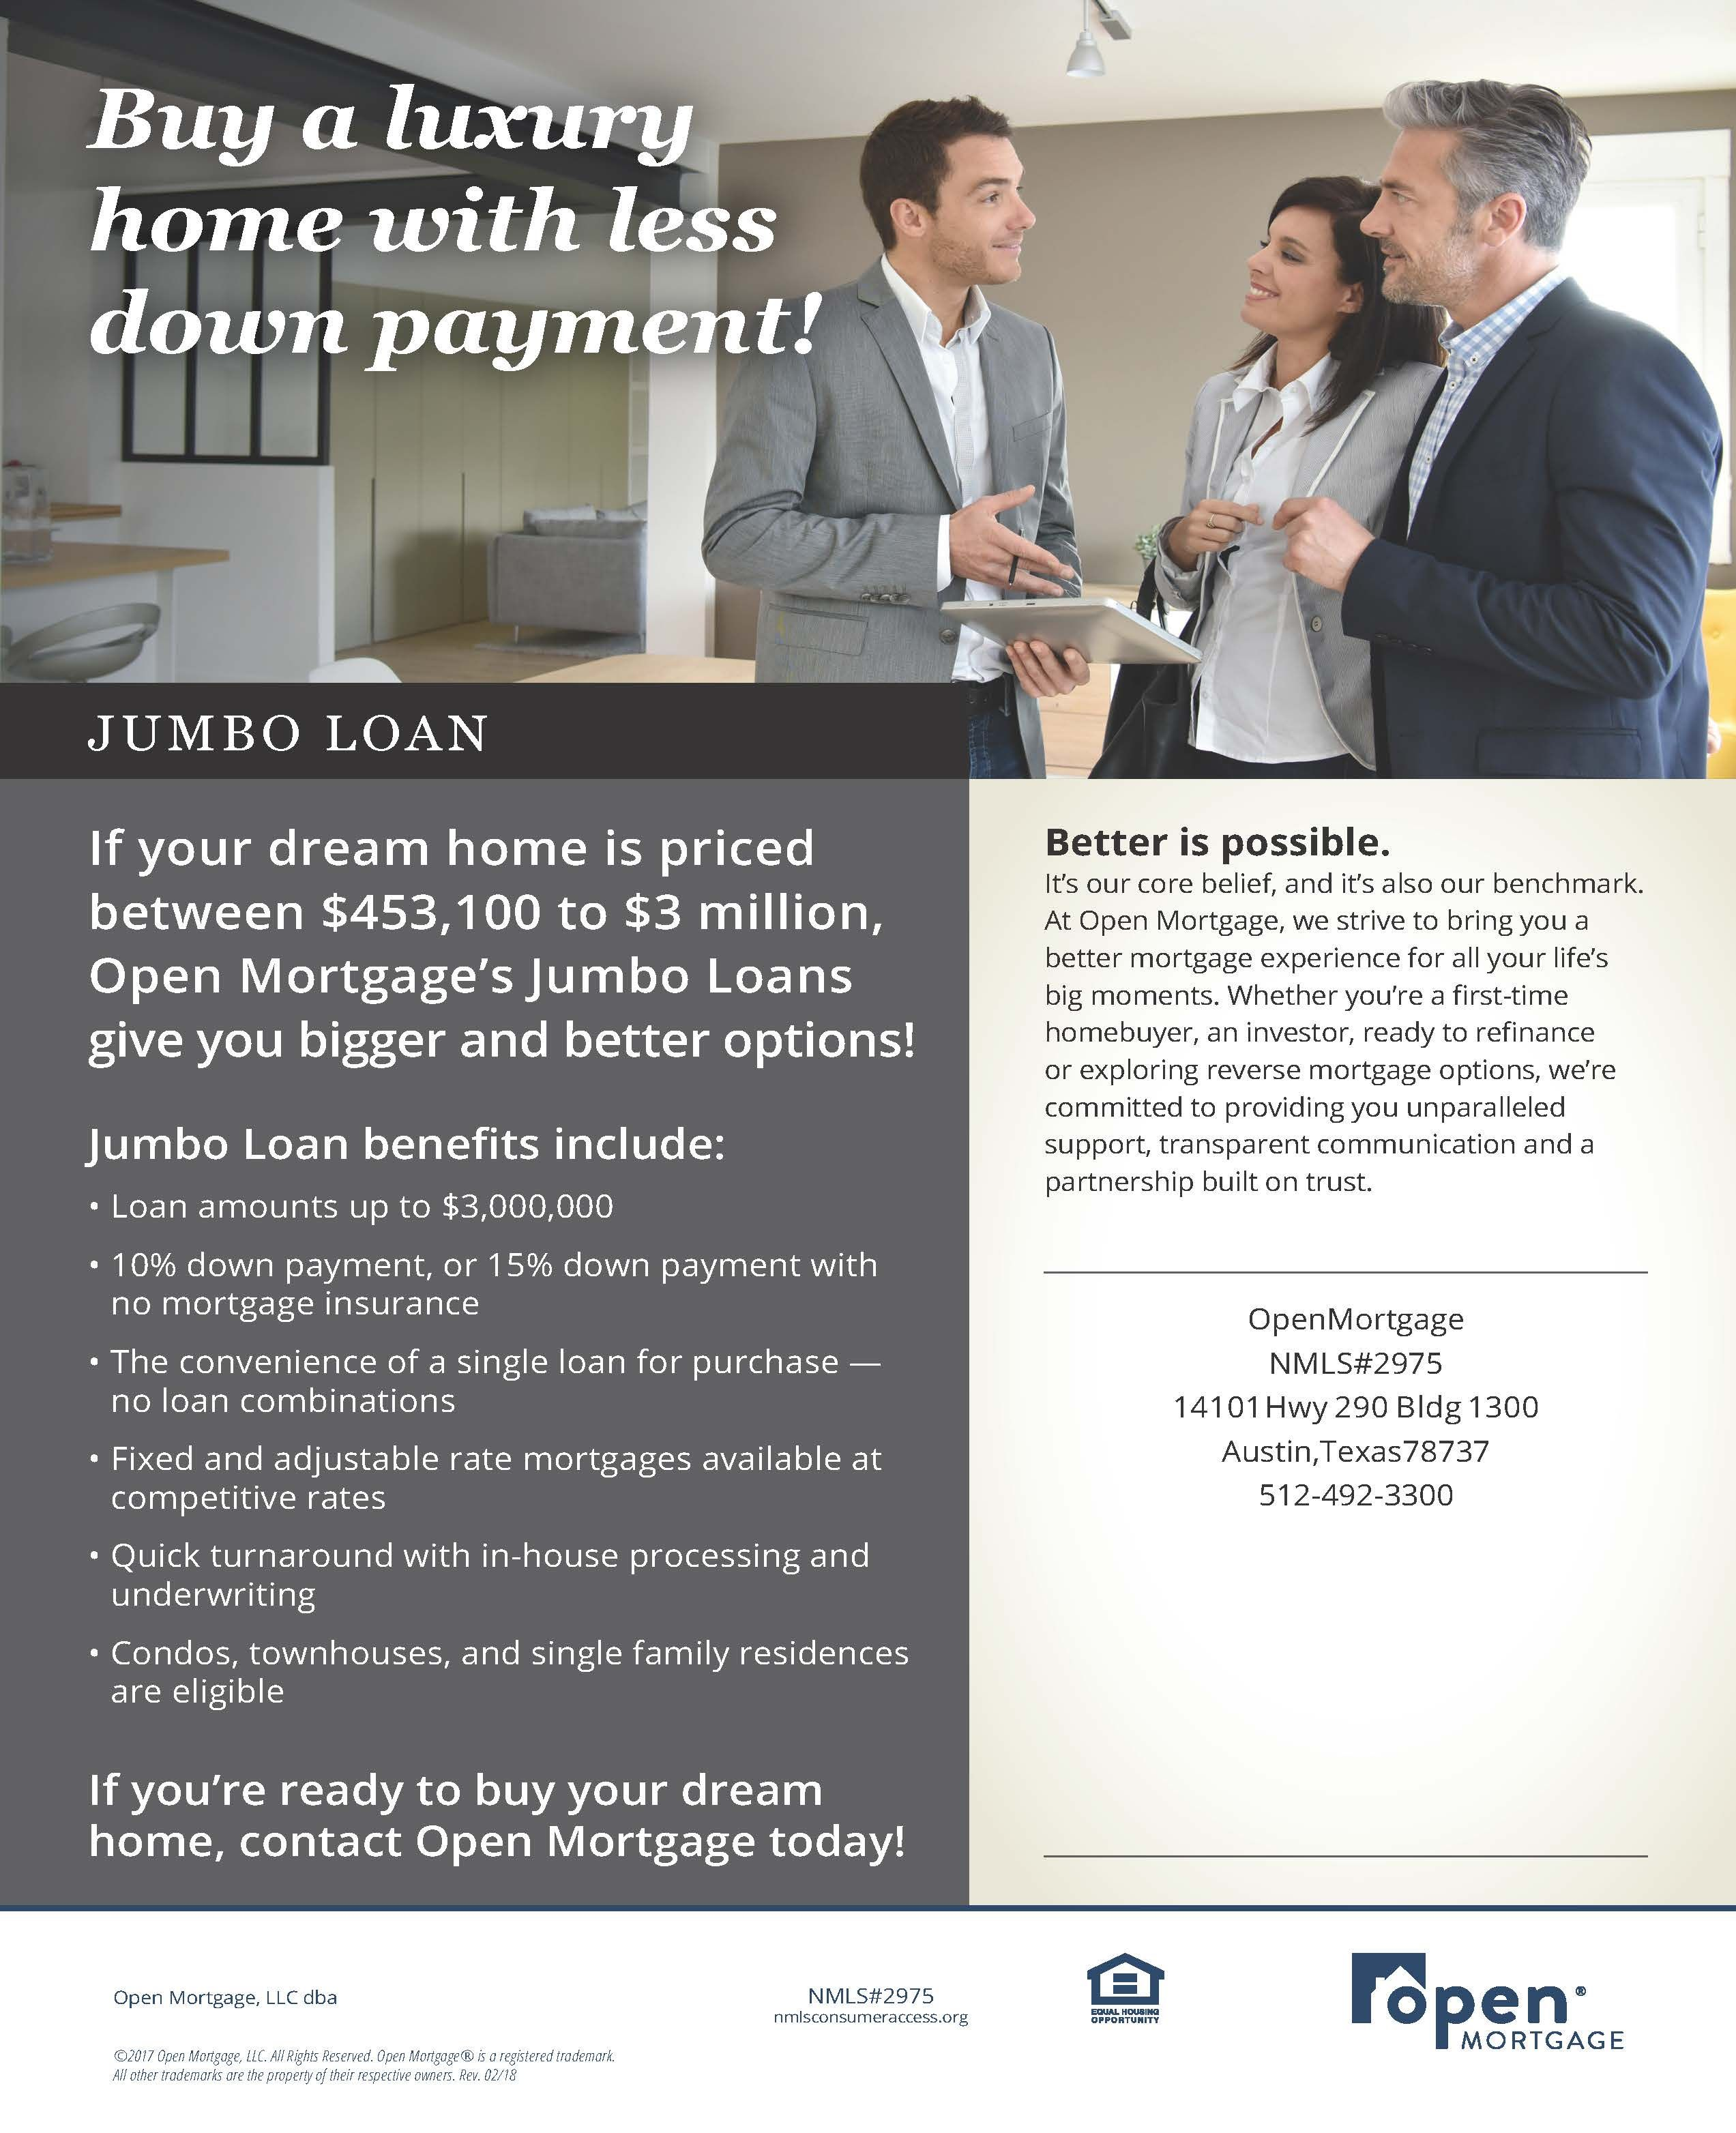 No Price Should Be Too Big For Your Dream Home Thanks To Jumbo Loans Visit Openmortgage Com Today To Learn The Benefits Of Th With Images Jumbo Loans Dreaming Of You Loan